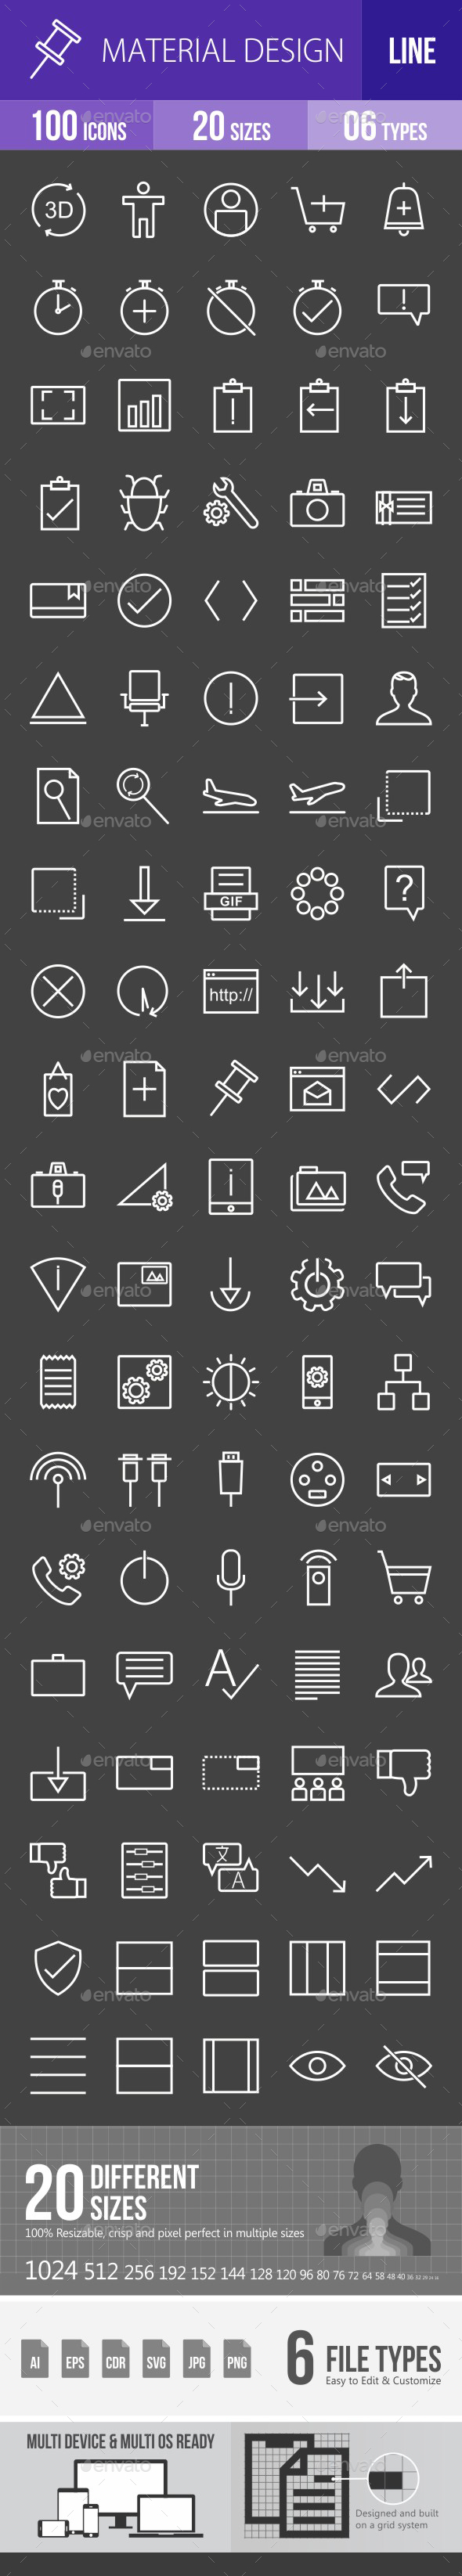 Material Design Line Inverted Icons - Icons